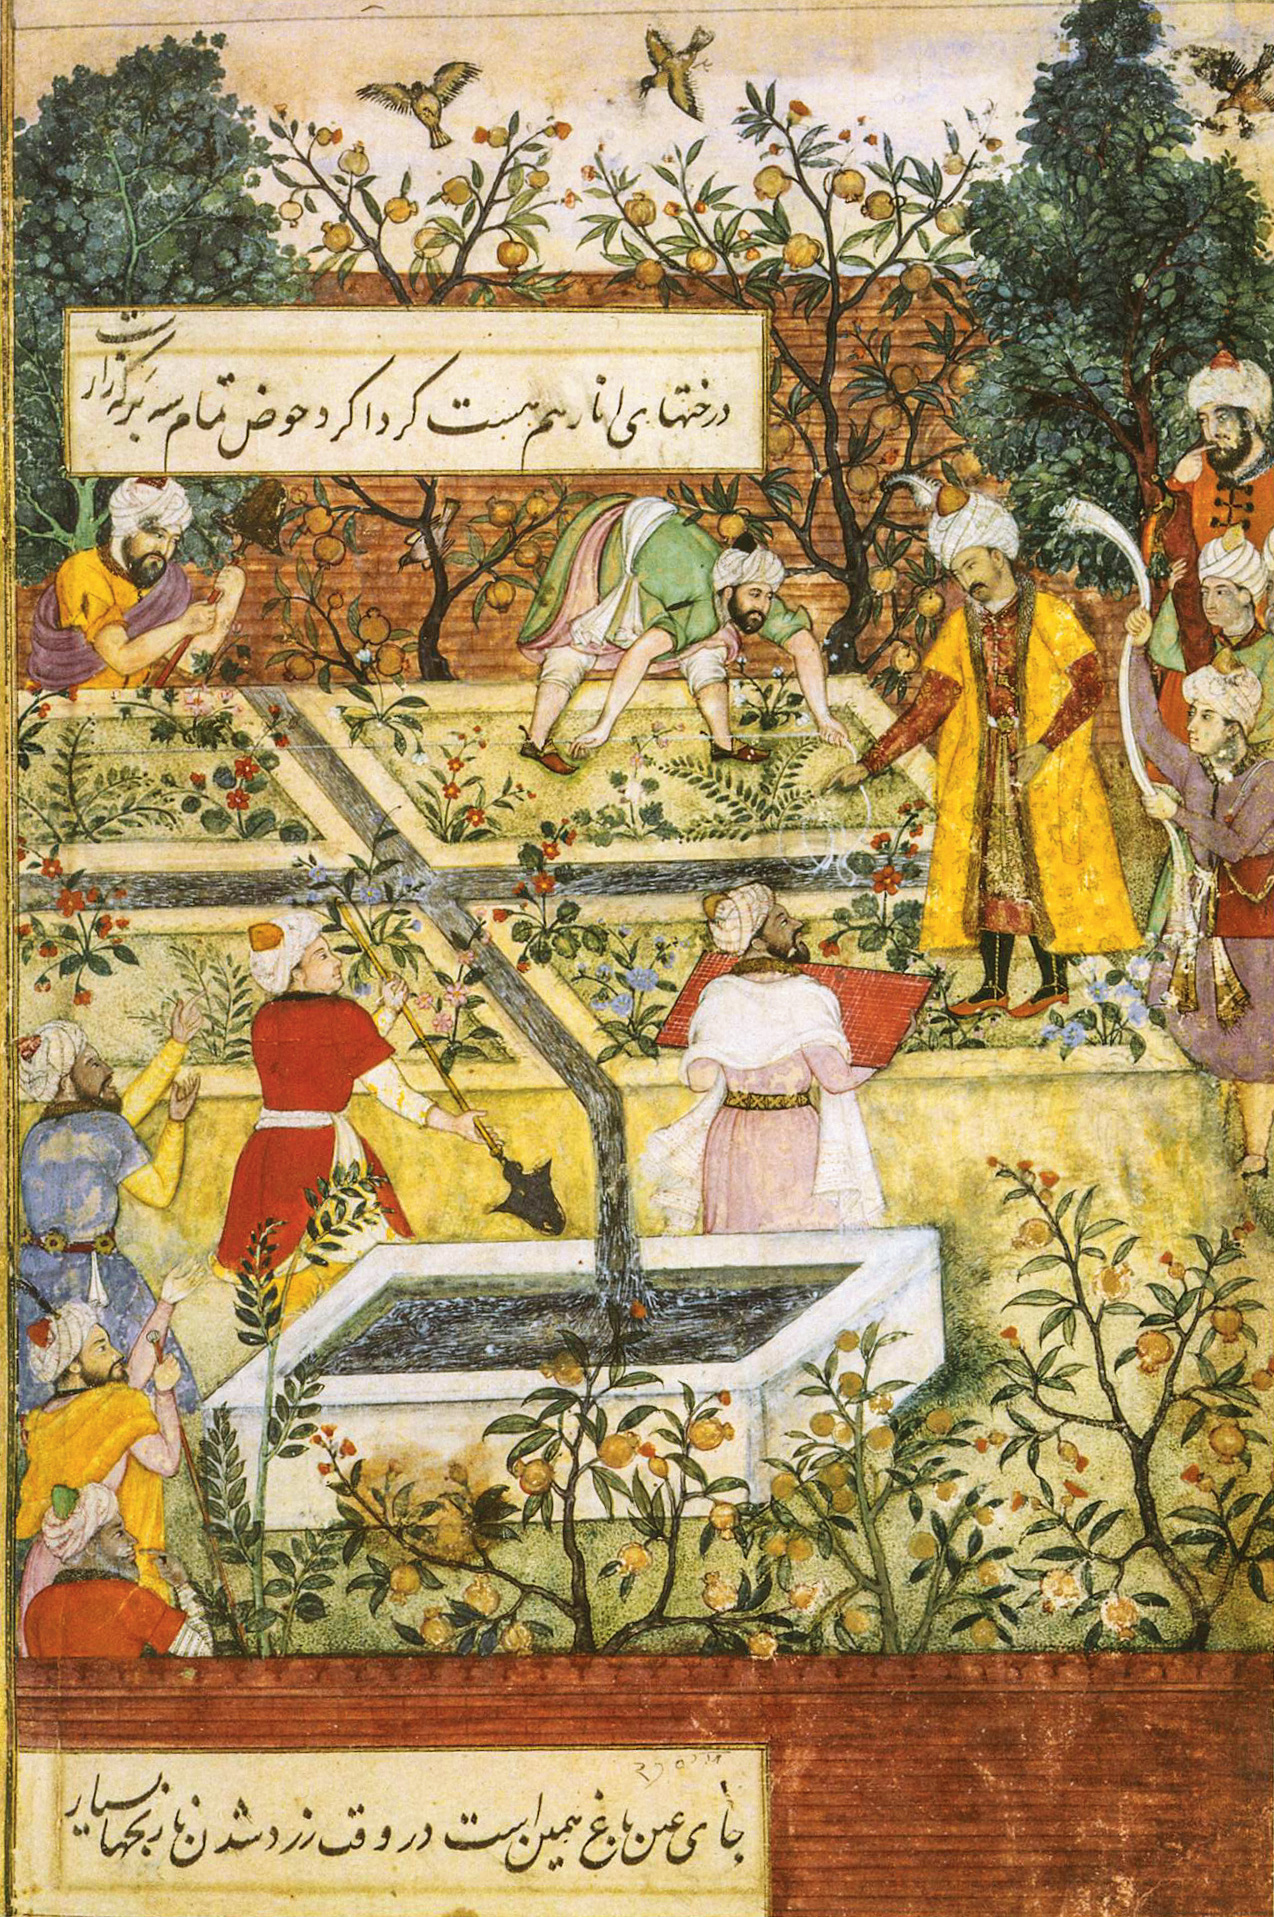 Babur supervising the laying out of a Kabul garden, from Baburnama; by Bishndas;  opaque watercolour on paper, c. 1590. Image credit: Victoria and Albert Museum, London